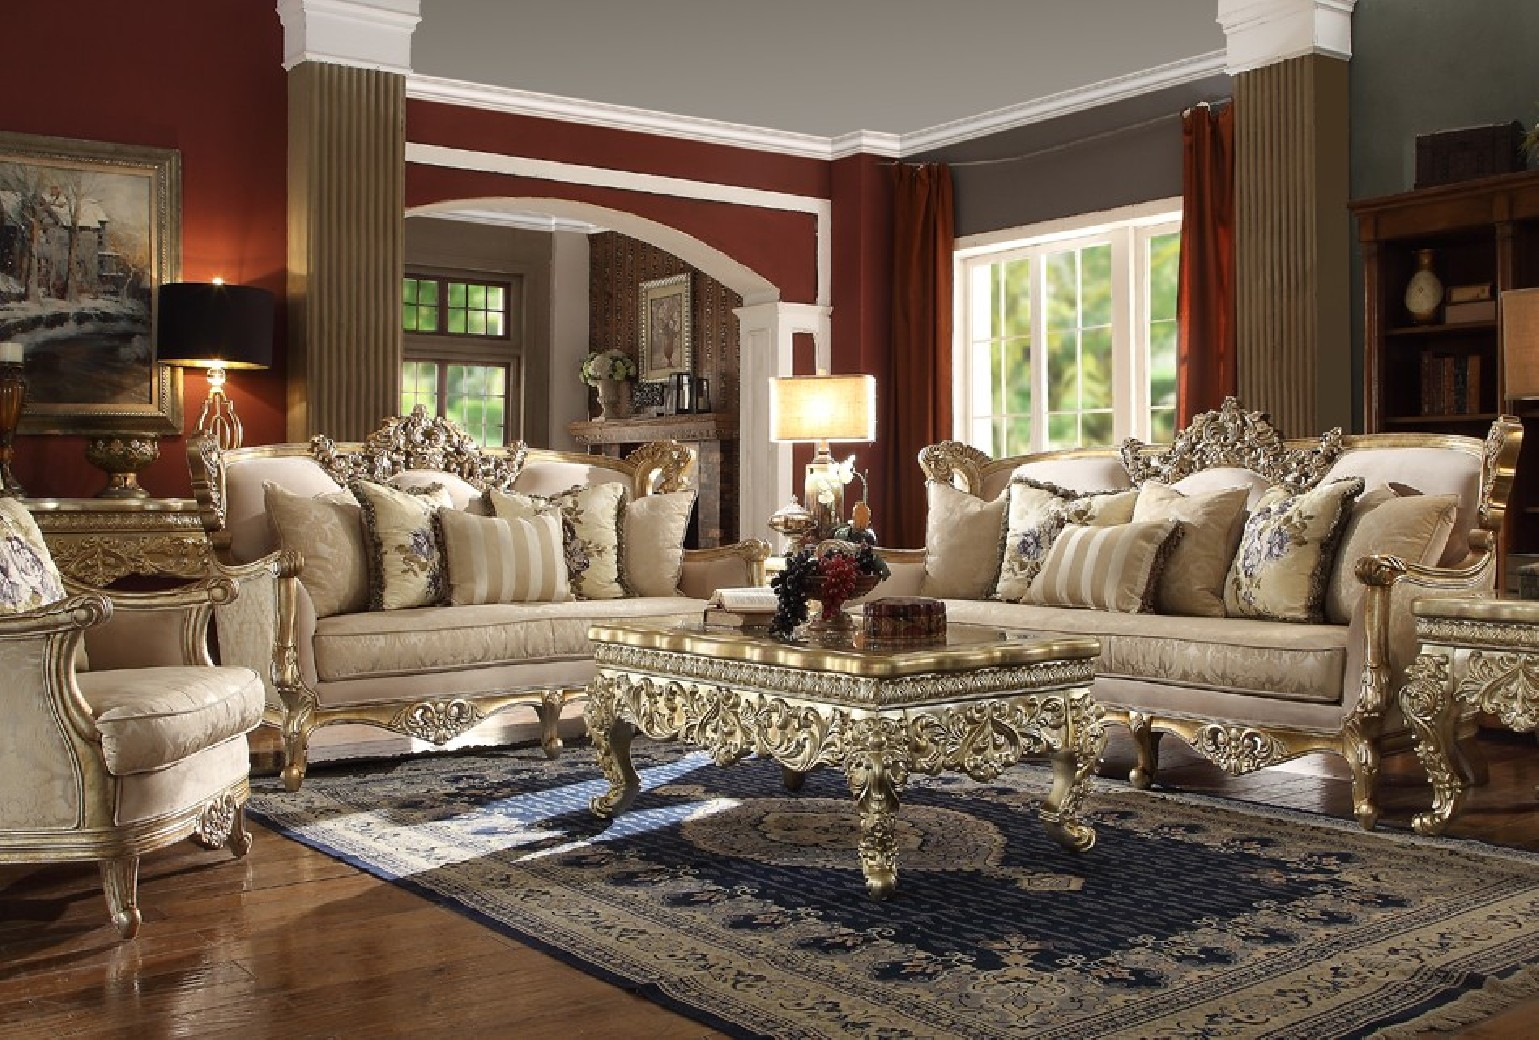 Hd 04 Homey Design Upholstery Living Room Set Victorian European